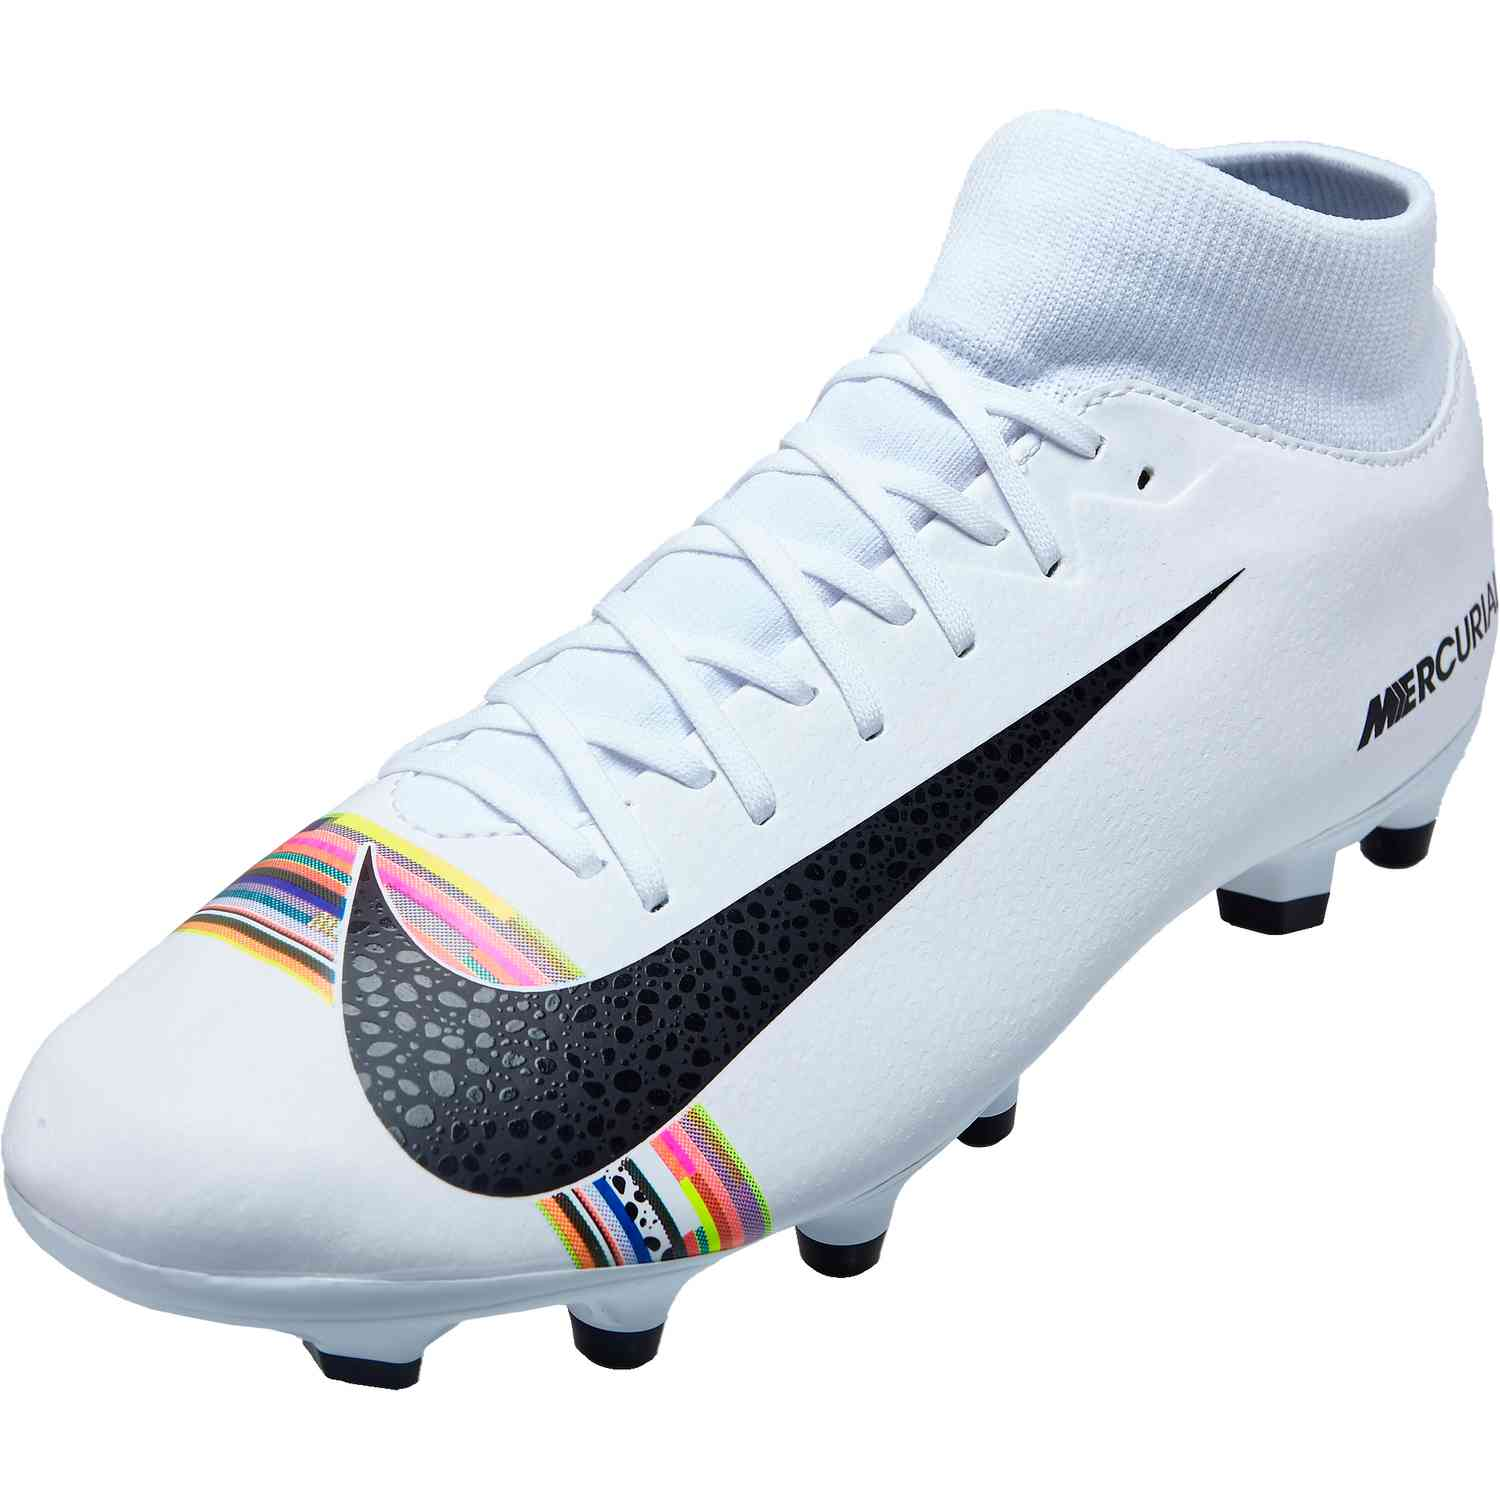 online store 2c909 15d4a Nike Mercurial Superfly 6 Academy FG - Level Up - SoccerPro